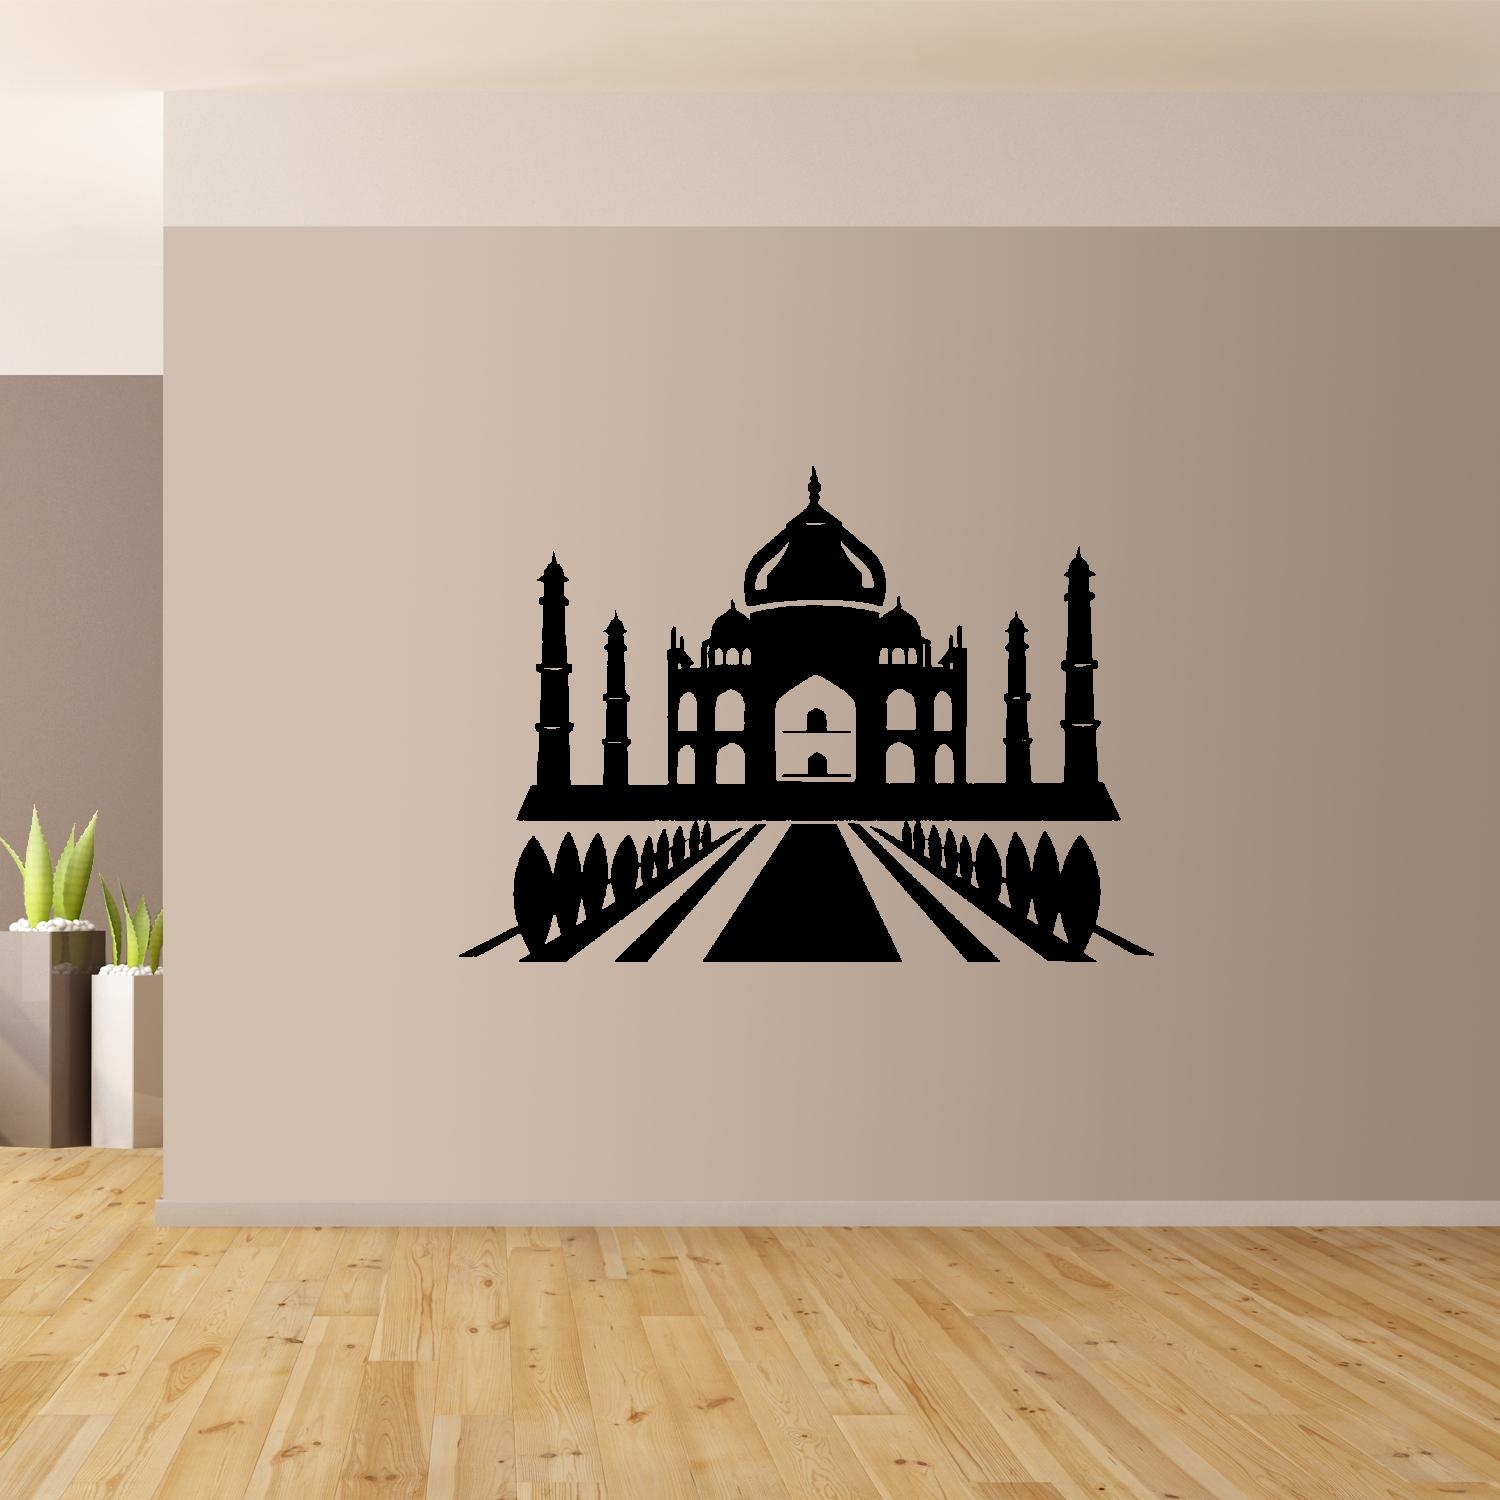 Taj Mahal Wall Art Giant Sticker Mural Graphic Wallart India Intended For Taj Mahal Wall Art (View 12 of 20)